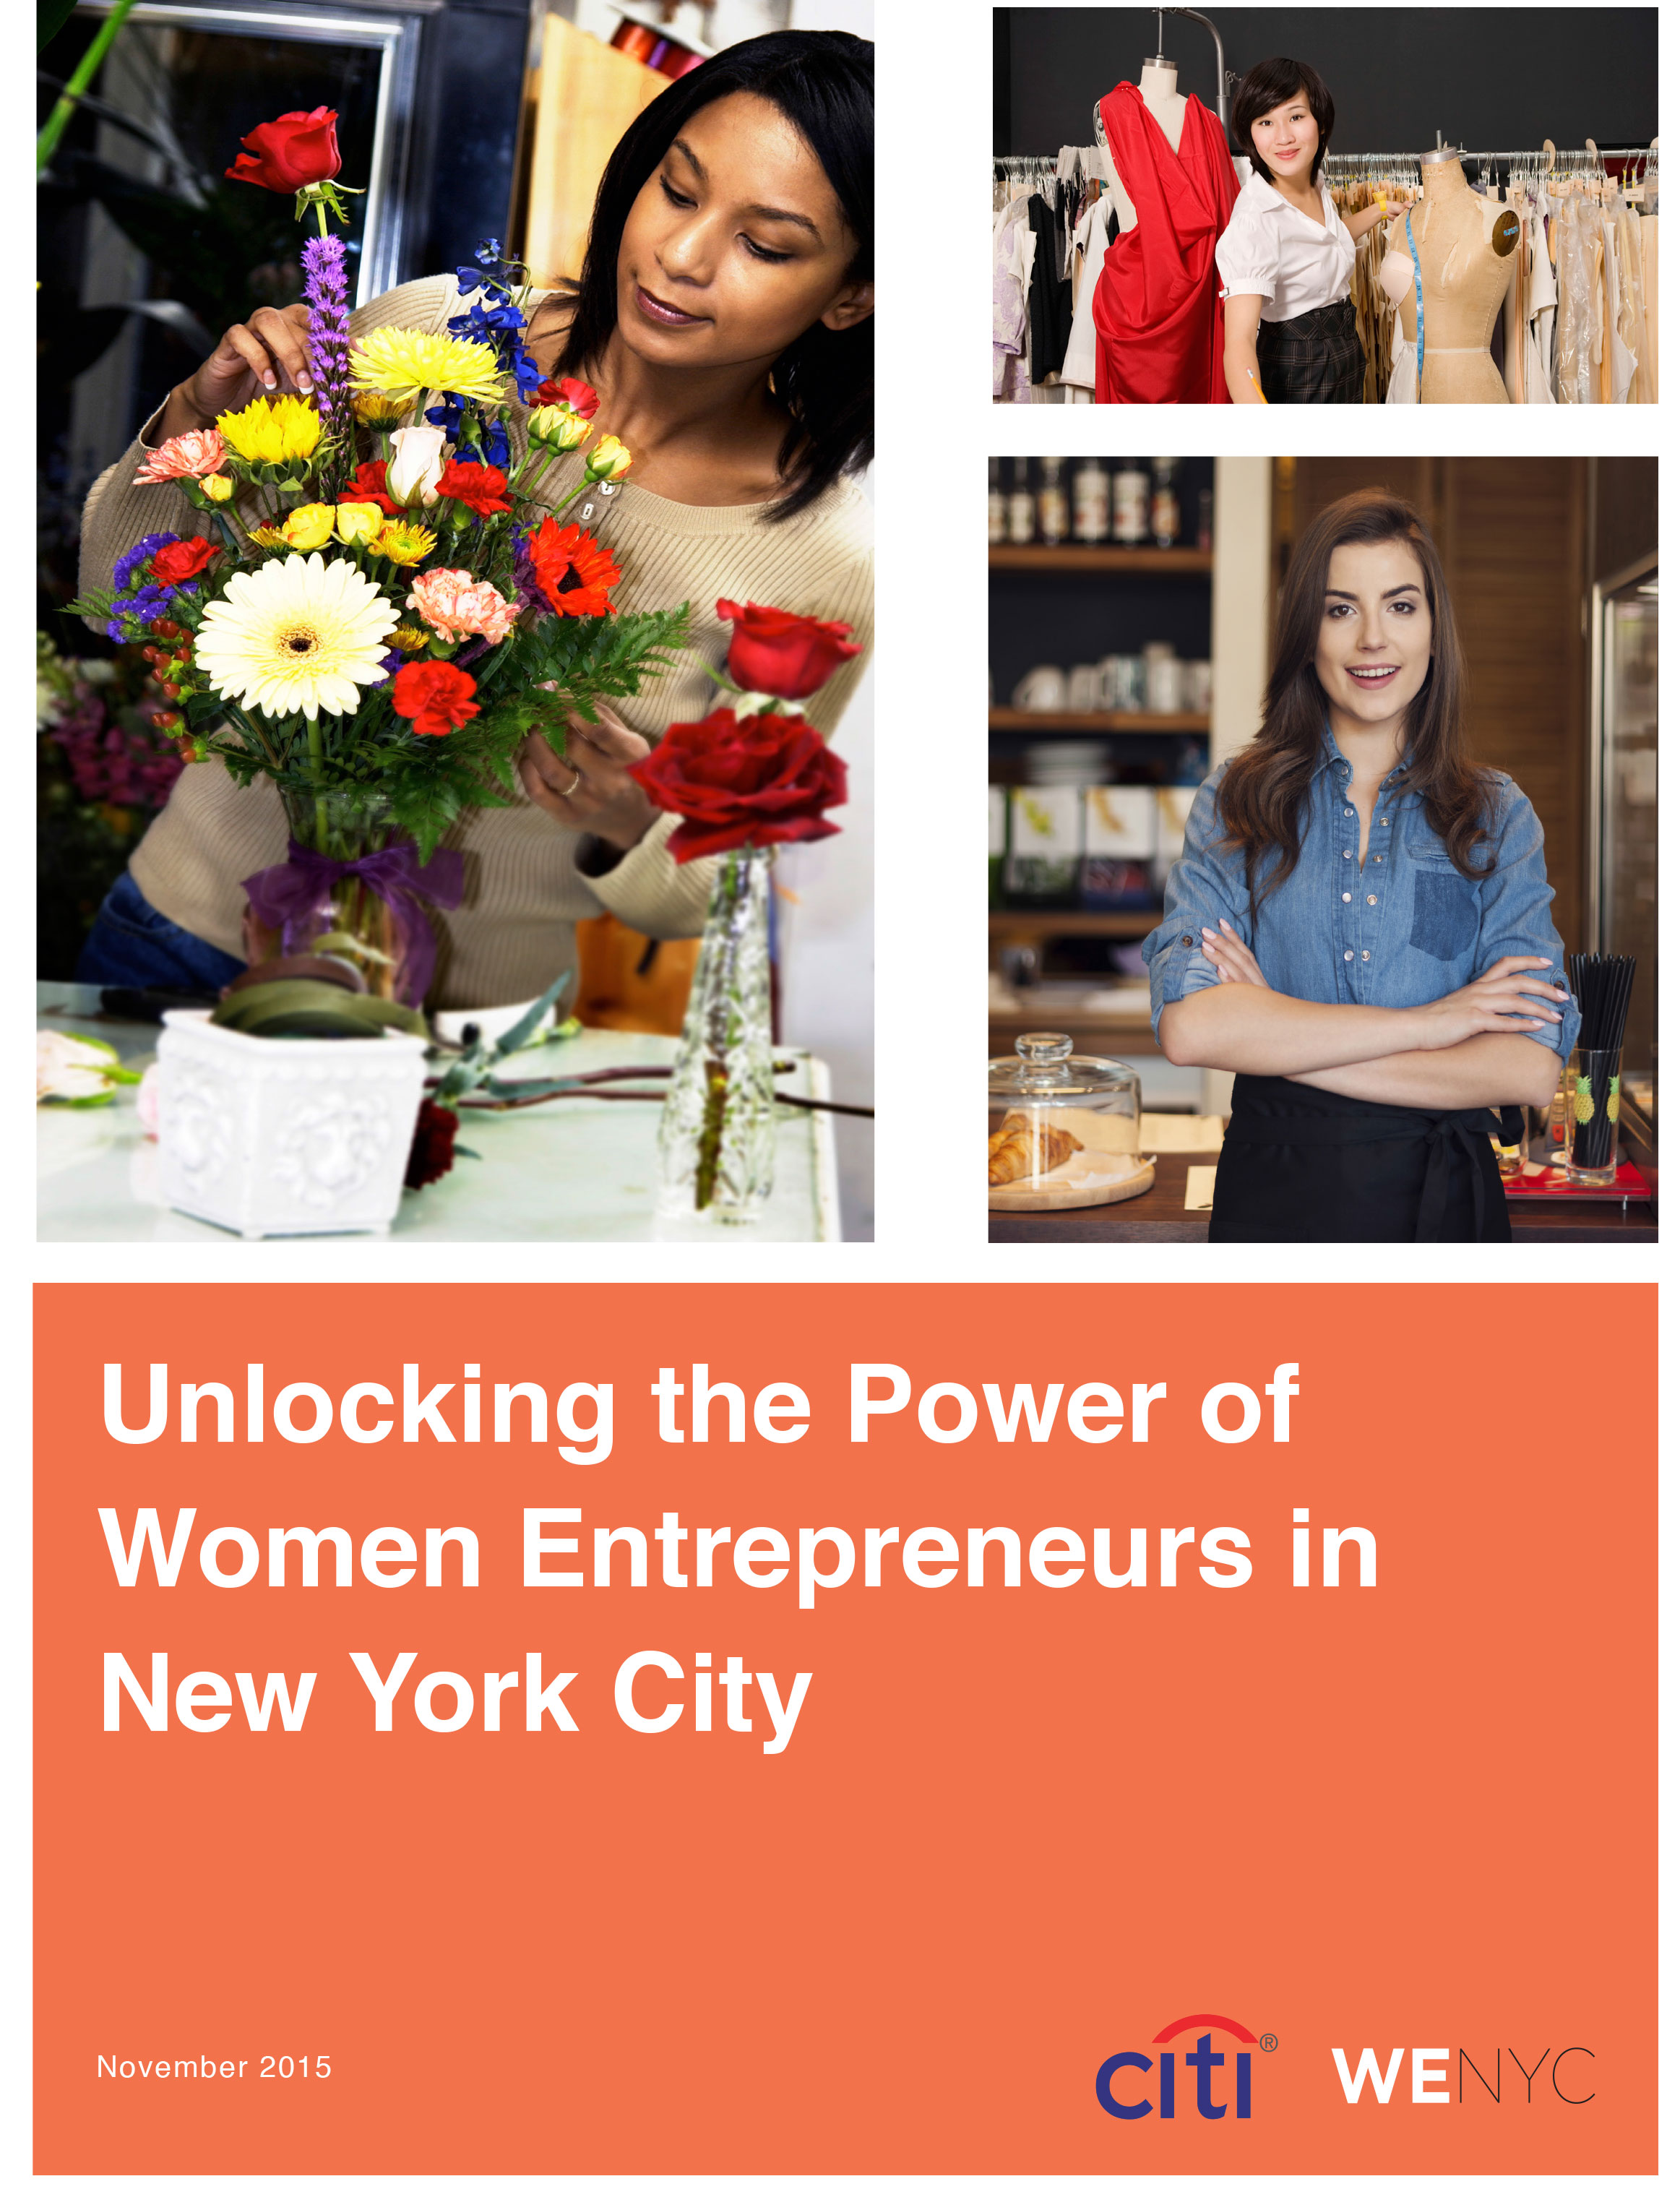 Unlocking the Power of Women Entrepreneurs in New York City